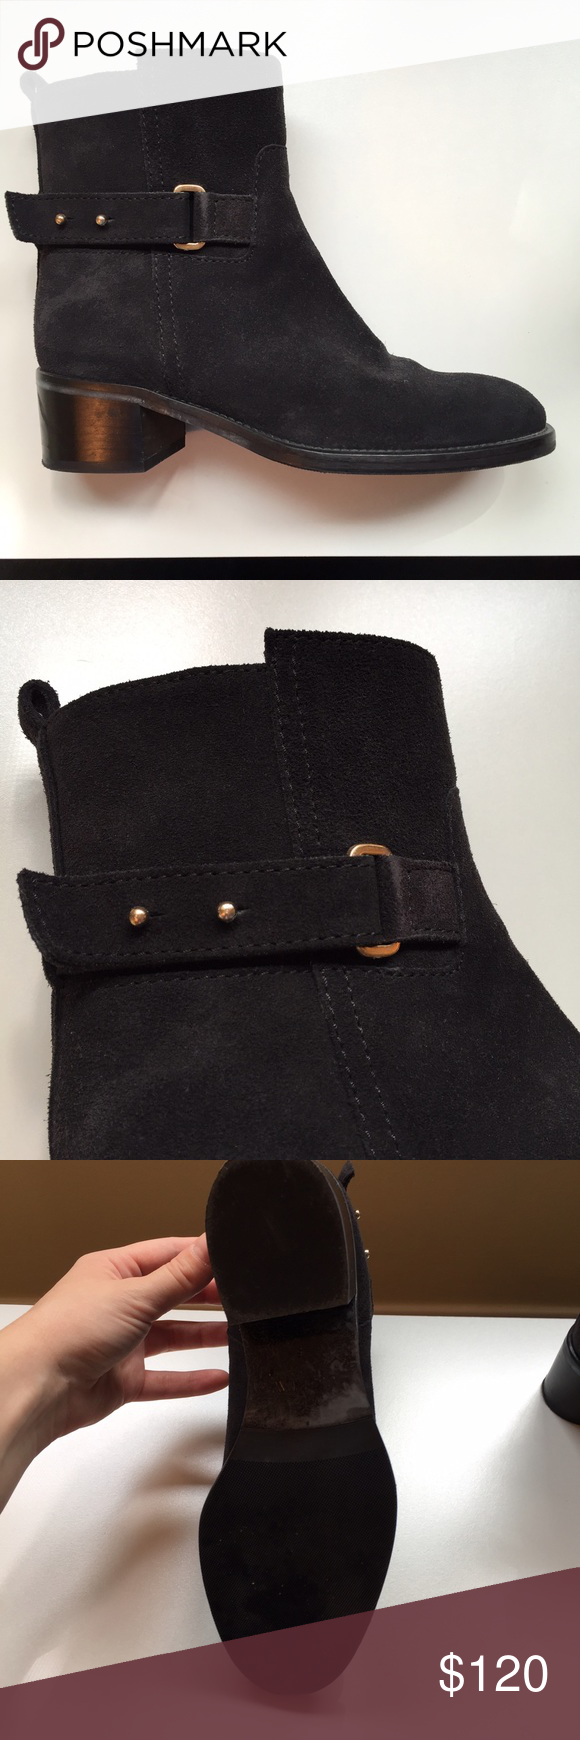 J.Crew Black Suede Boots Beautiful suede J.Crew boots. The perfect pair for fall, look great with jeans or dresses and cozy sweaters. Worn twice, no wear on upper, light wear on soles. I will accept reasonable offers through the offer feature, no trades or lowballs! J. Crew Shoes Combat & Moto Boots